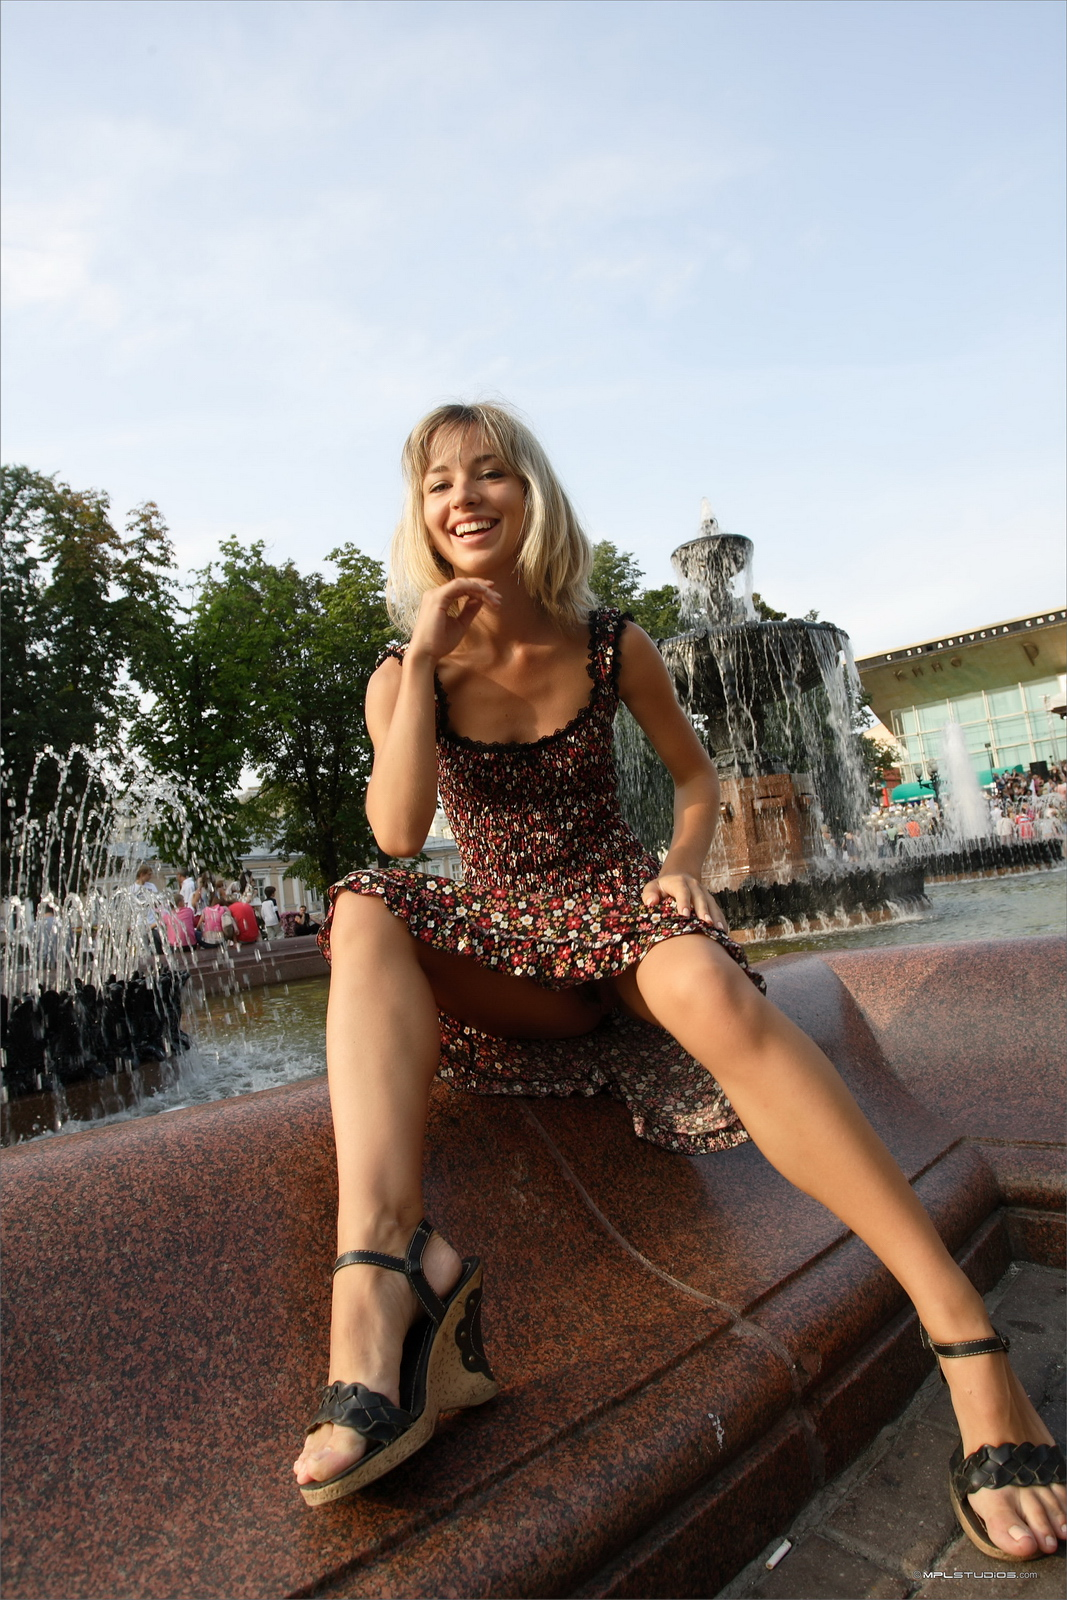 https://redbust.com/stuff/natalia-postcard-from-moscow/lia-flash-in-public-moscow-slim-girl-mplstudios-48.jpg